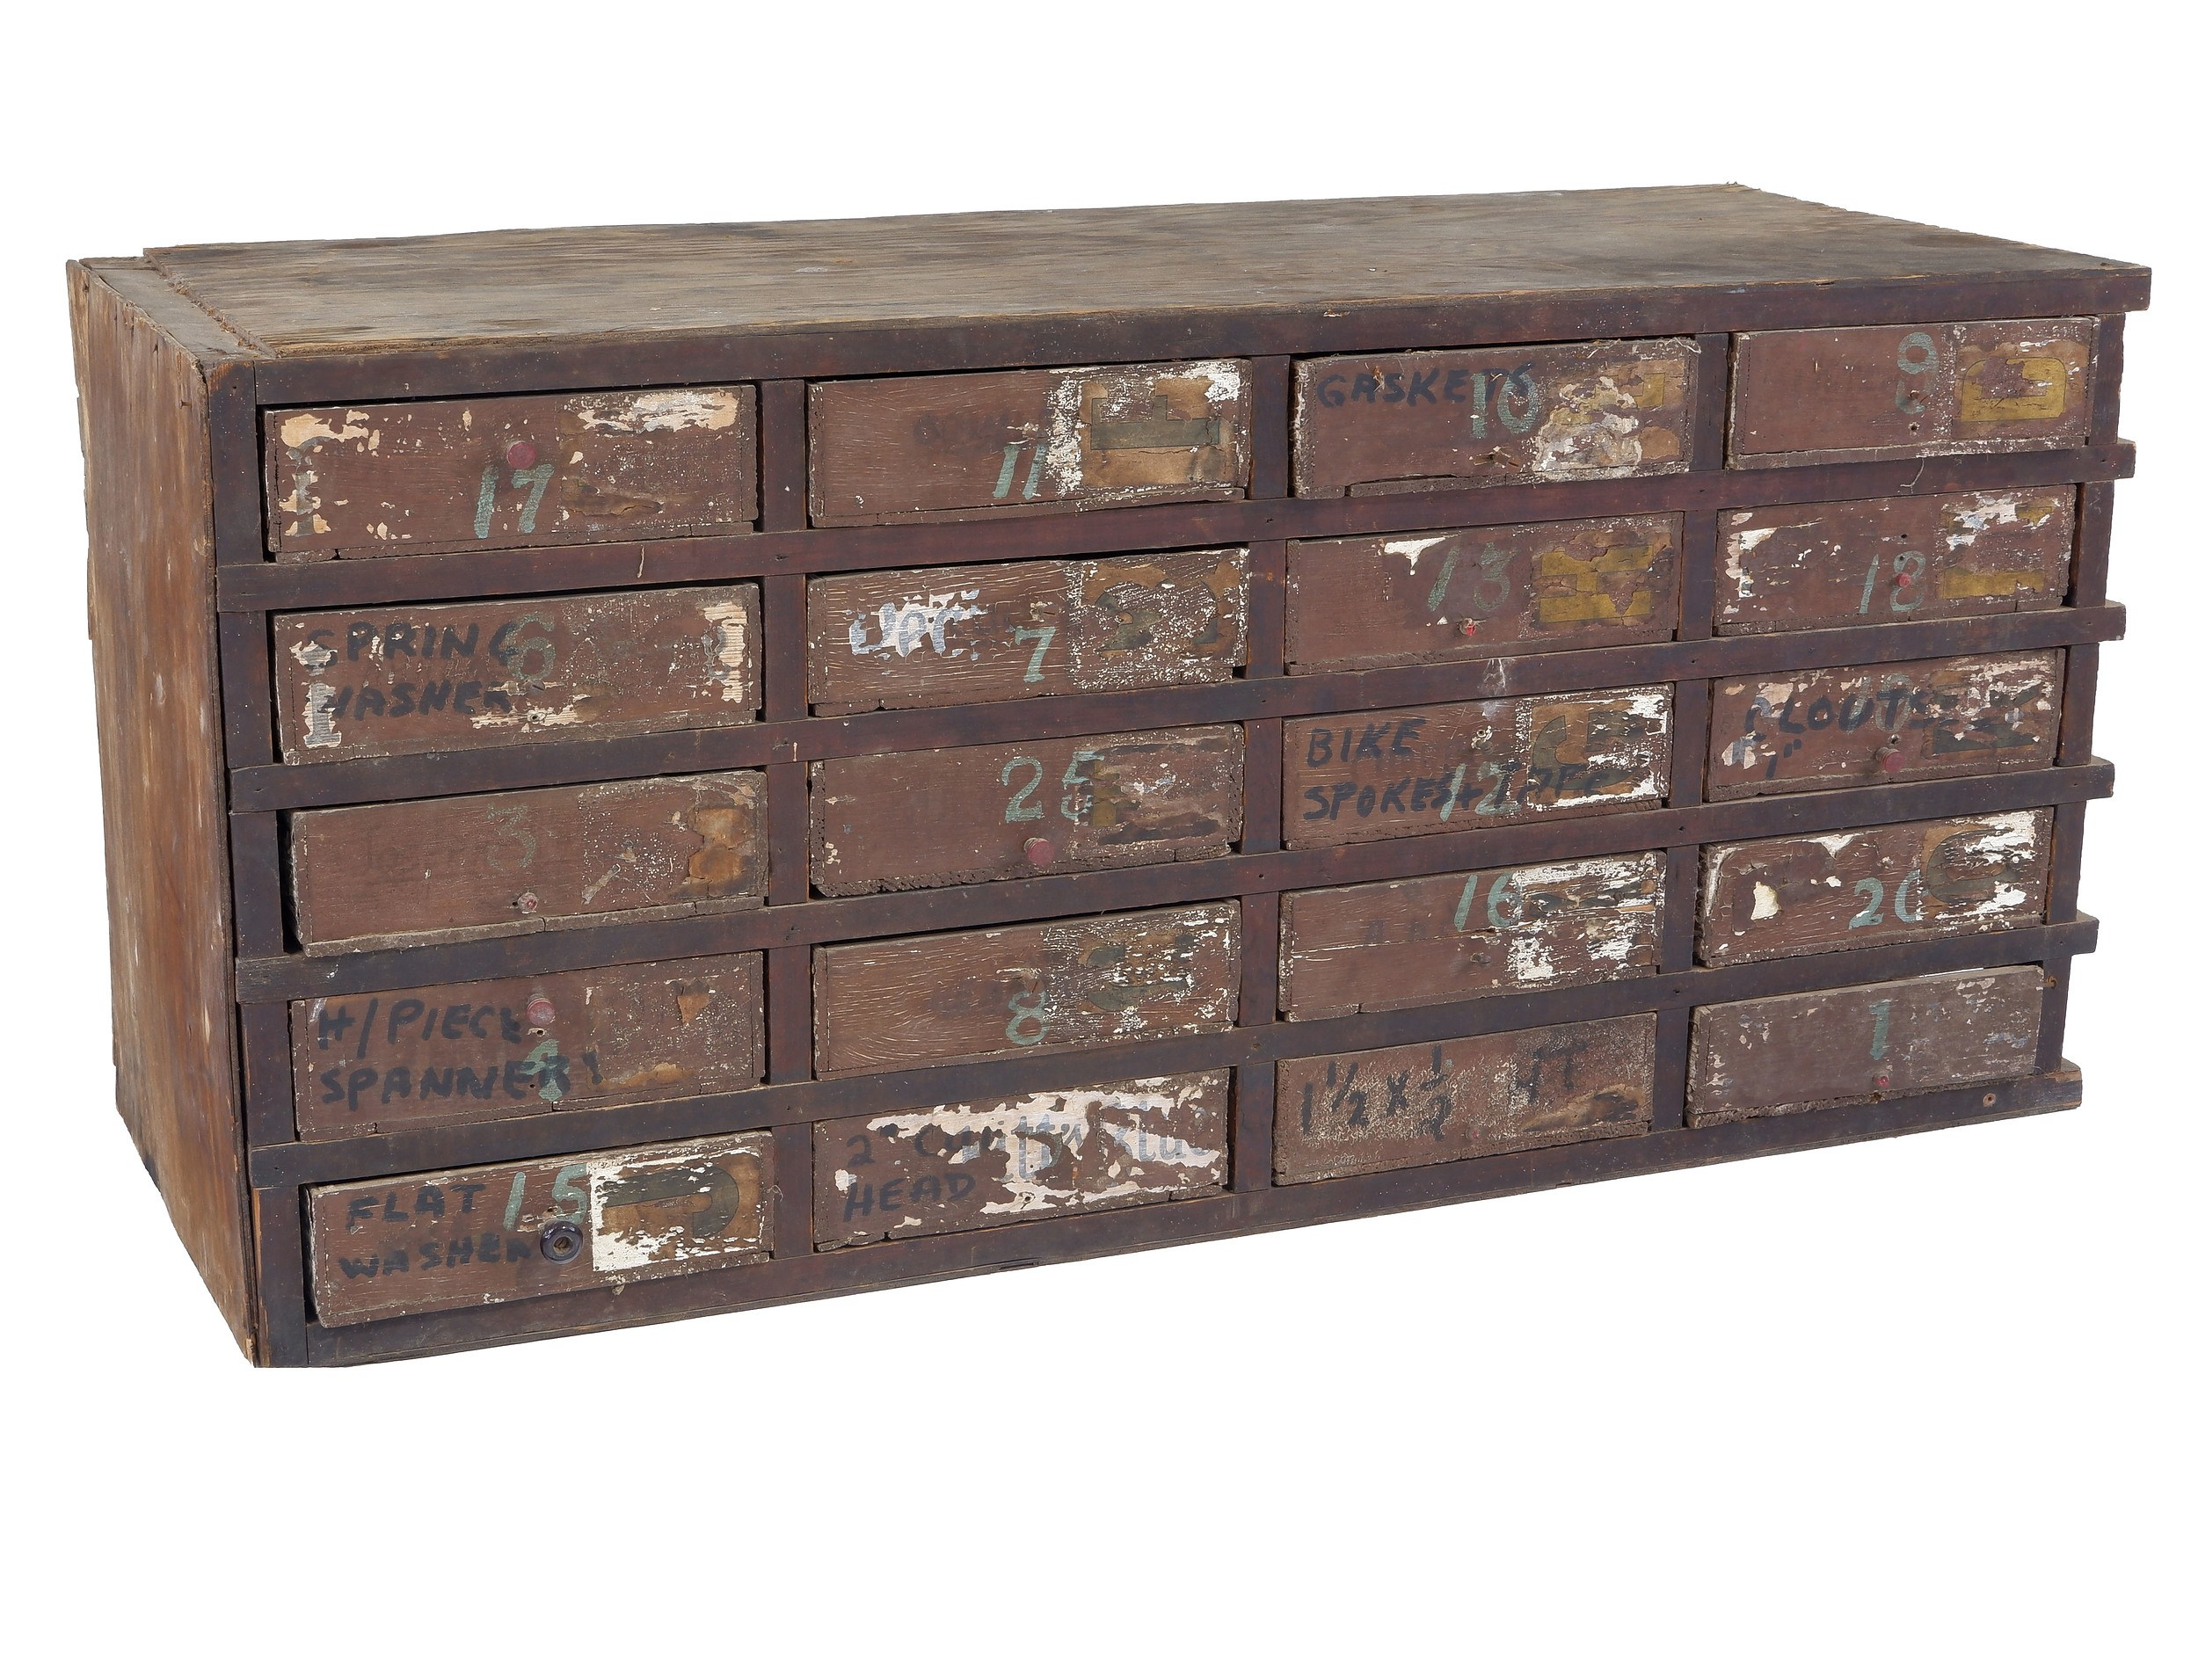 'Australian Depression Era Chest of Drawers'